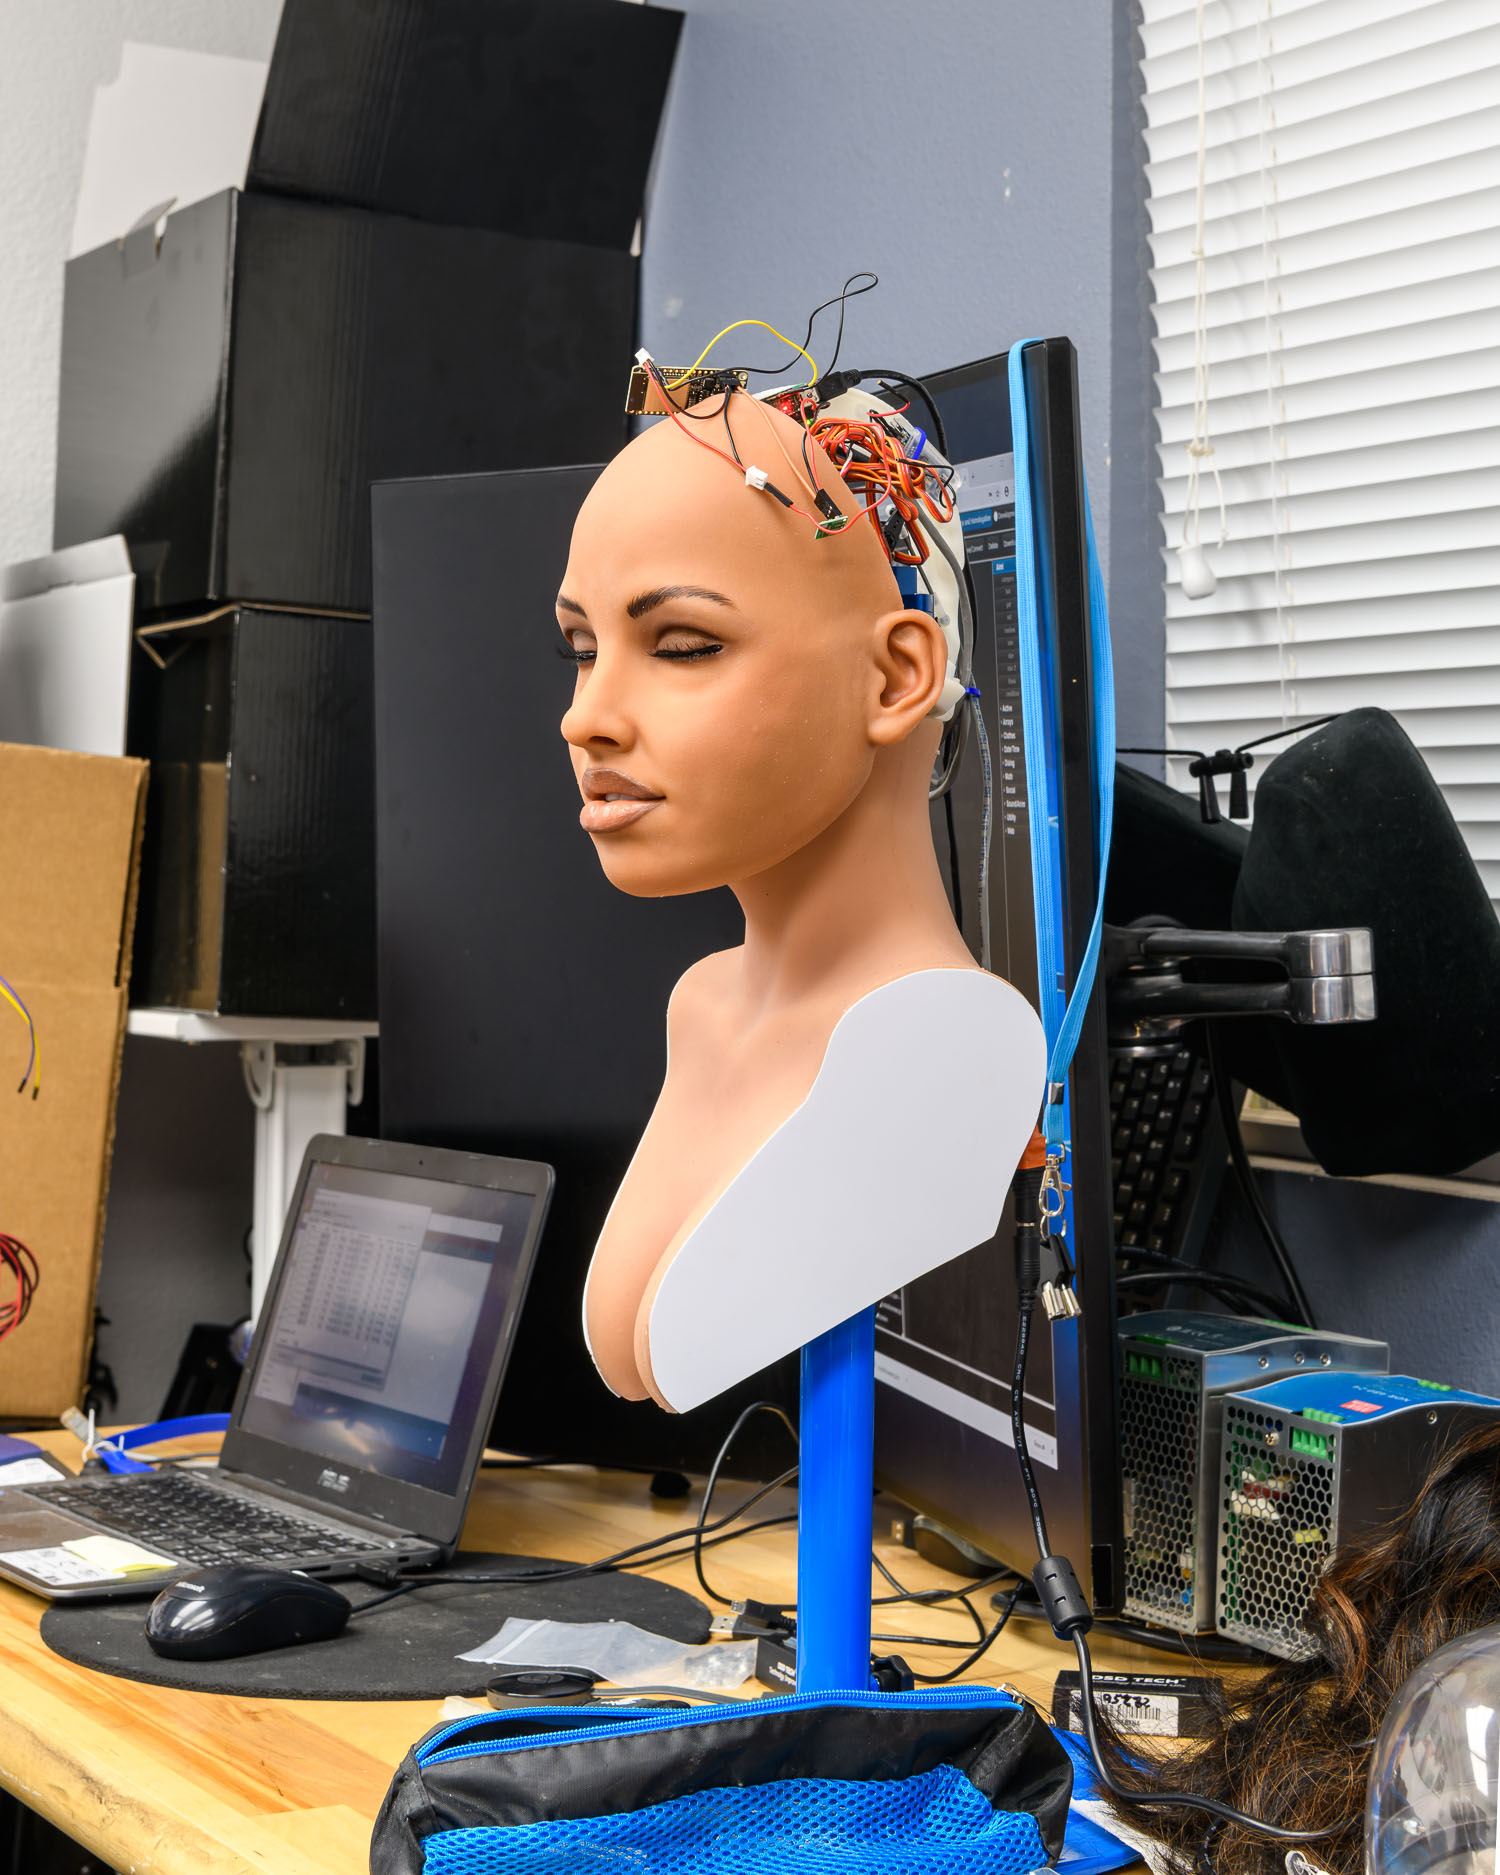 A robotic head at the RealDoll robot workshop in San Marcos